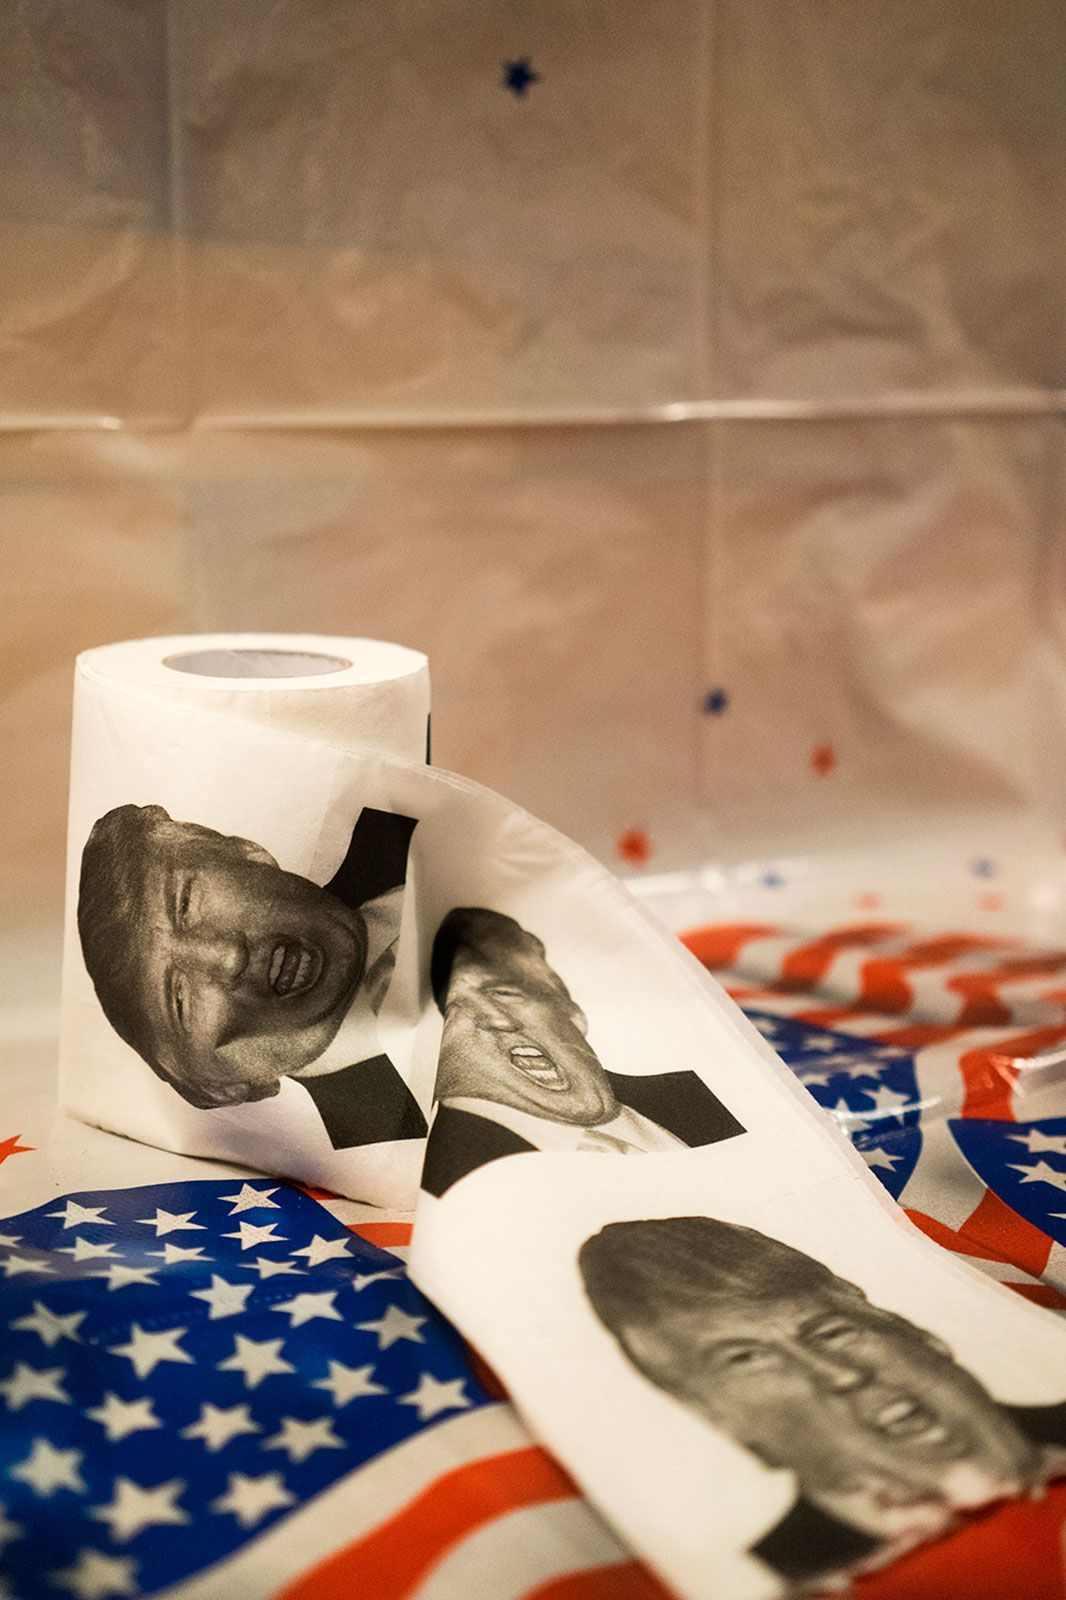 """This Is What Election Night Looks Like Around The World & Across The Country #refinery29  http://www.refinery29.com/2016/11/129026/this-is-what-election-night-looks-like-around-the-world#slide-28  Quito, EcuadorToilet paper in a bar where many Americans living or traveling in Quito watched election results. Photo by Ana María Buitrón, @lachuros, a contributor to The Everyday Project's <a href=""""http..."""